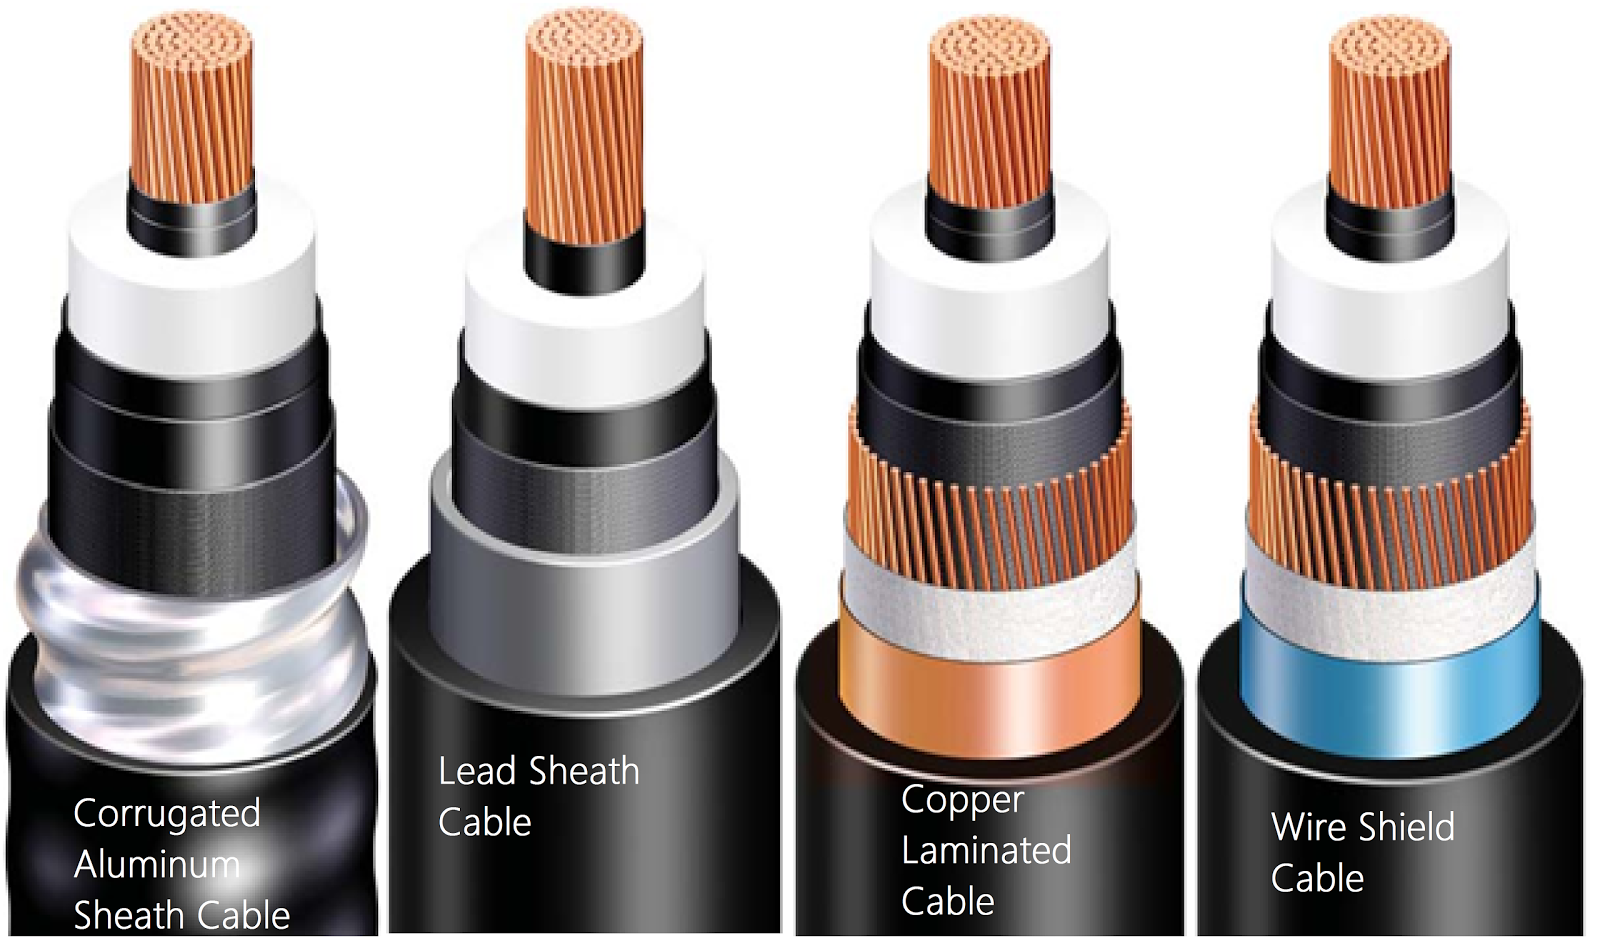 Constrution Xlpe Insulated Cable : Continuous current ratings of xlpe insulated underground